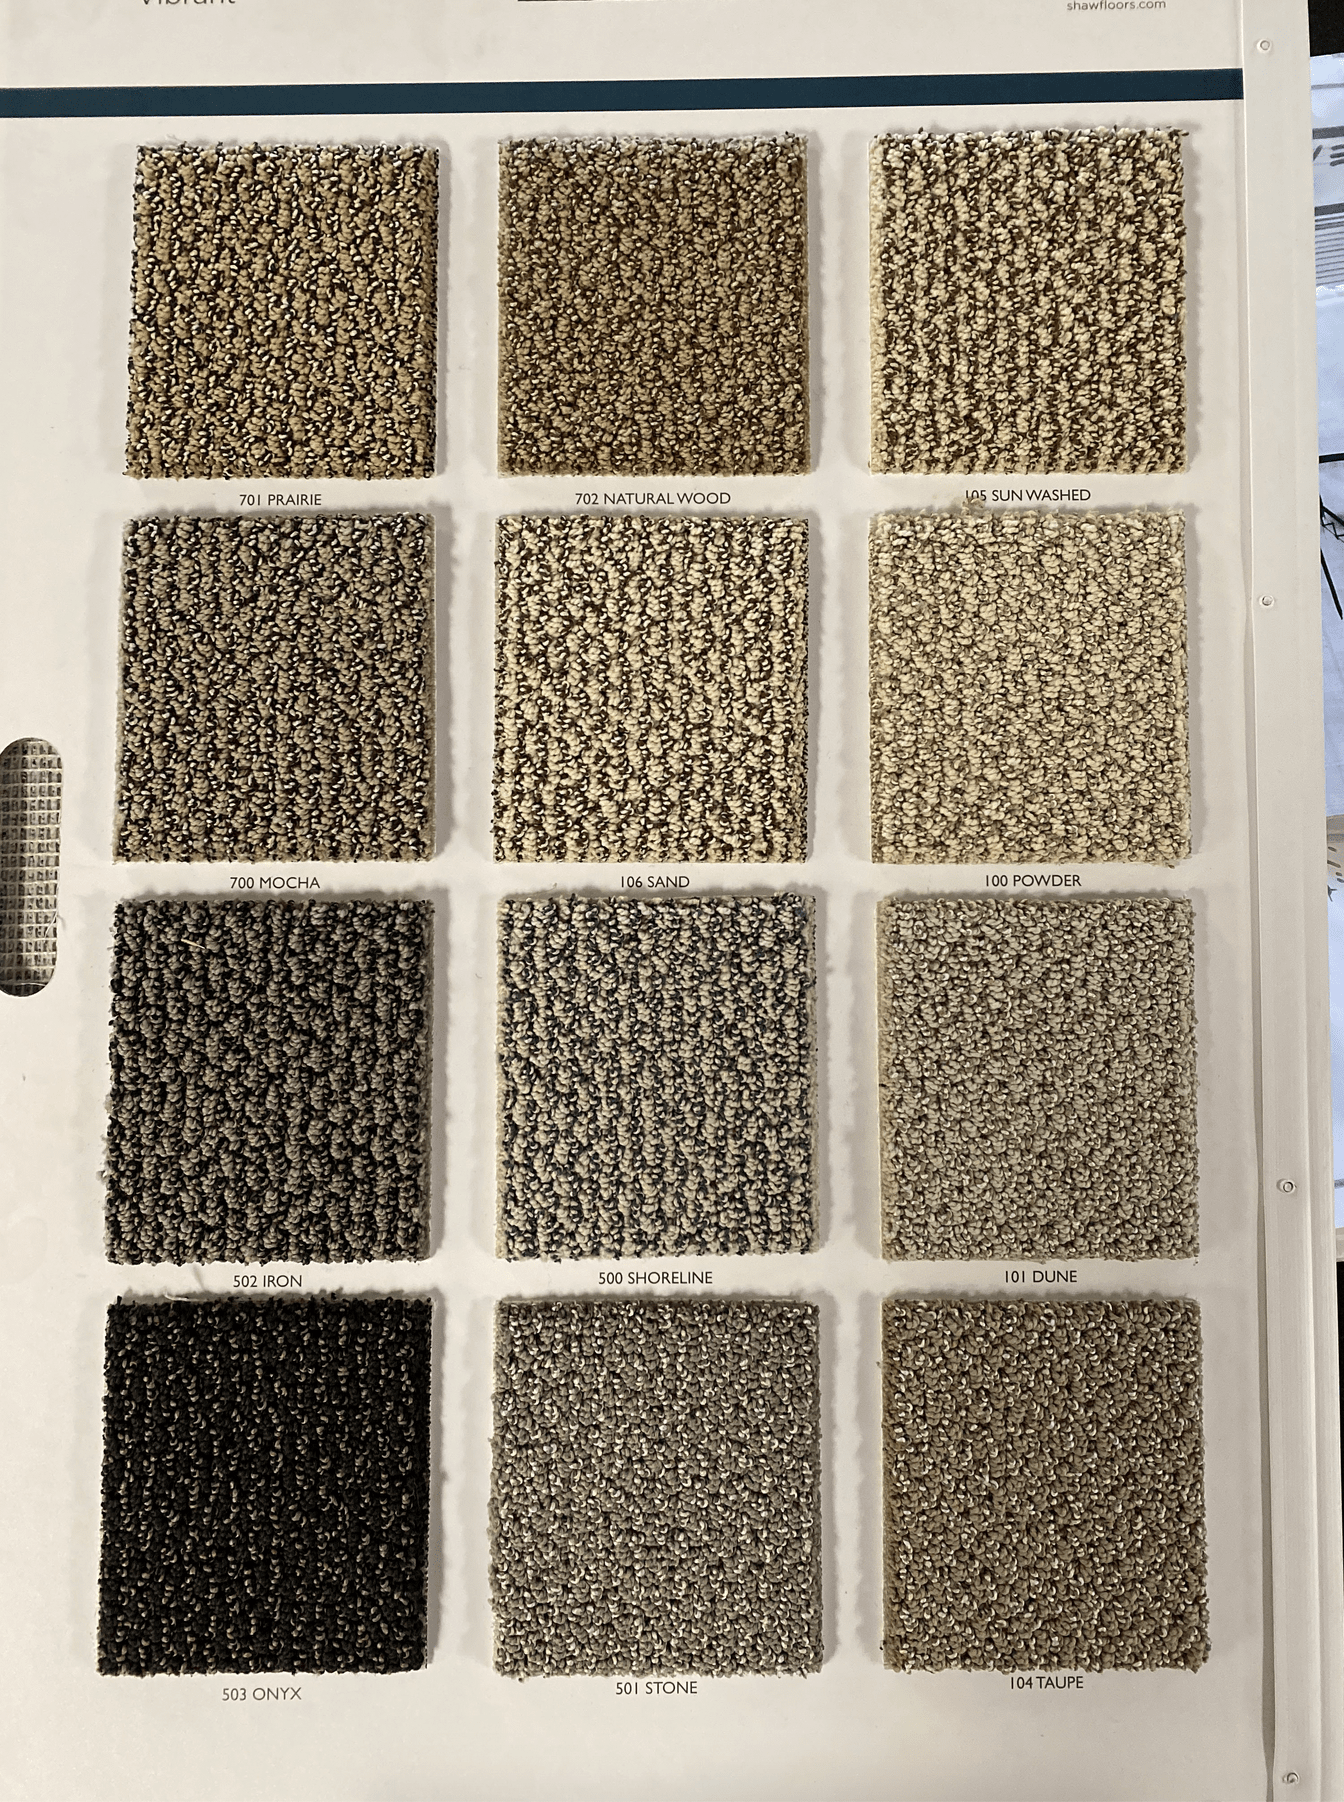 Carpet options in many different colors for your Louisville, KY home